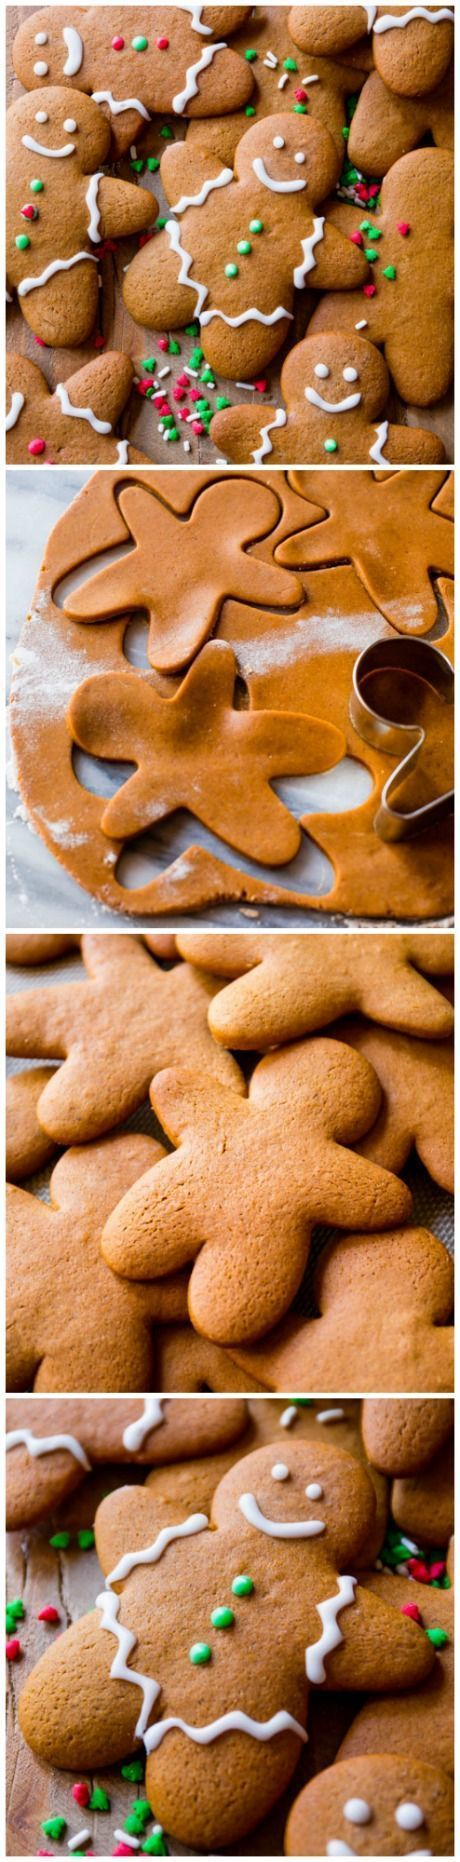 Here is my favorite gingerbread men recipe! Soft in the centers, crisp on the edges, perfectly spiced, molasses and brown sugar-sweetened holiday goodness. Recipe on http://sallysbakingaddiciton.com